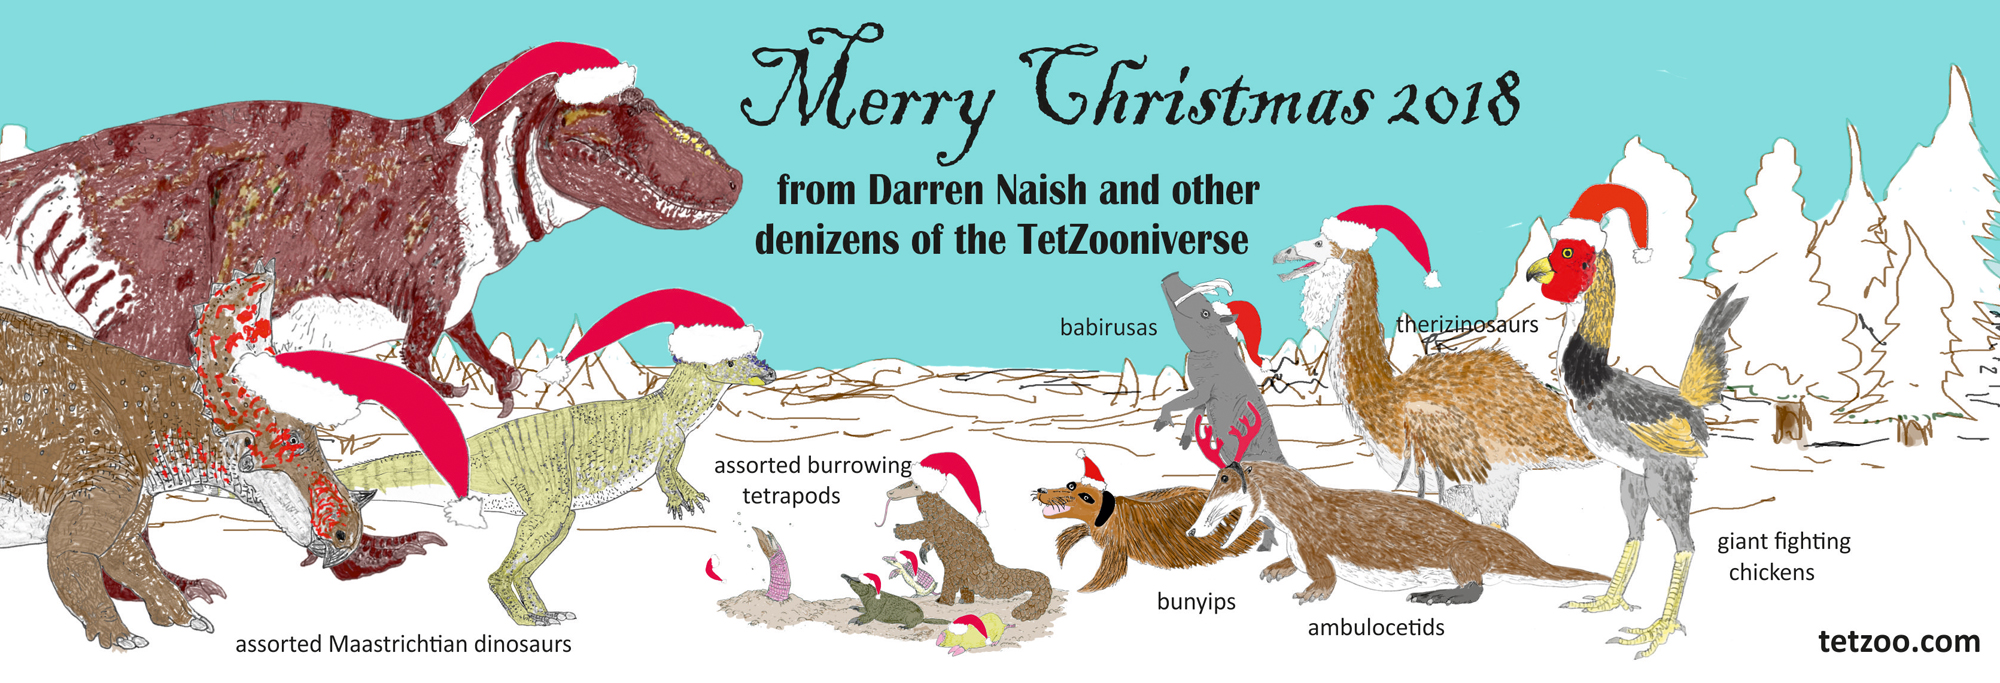 TetZooniverse-Christmas-2018-tiny-from-Darren-Naish.jpg